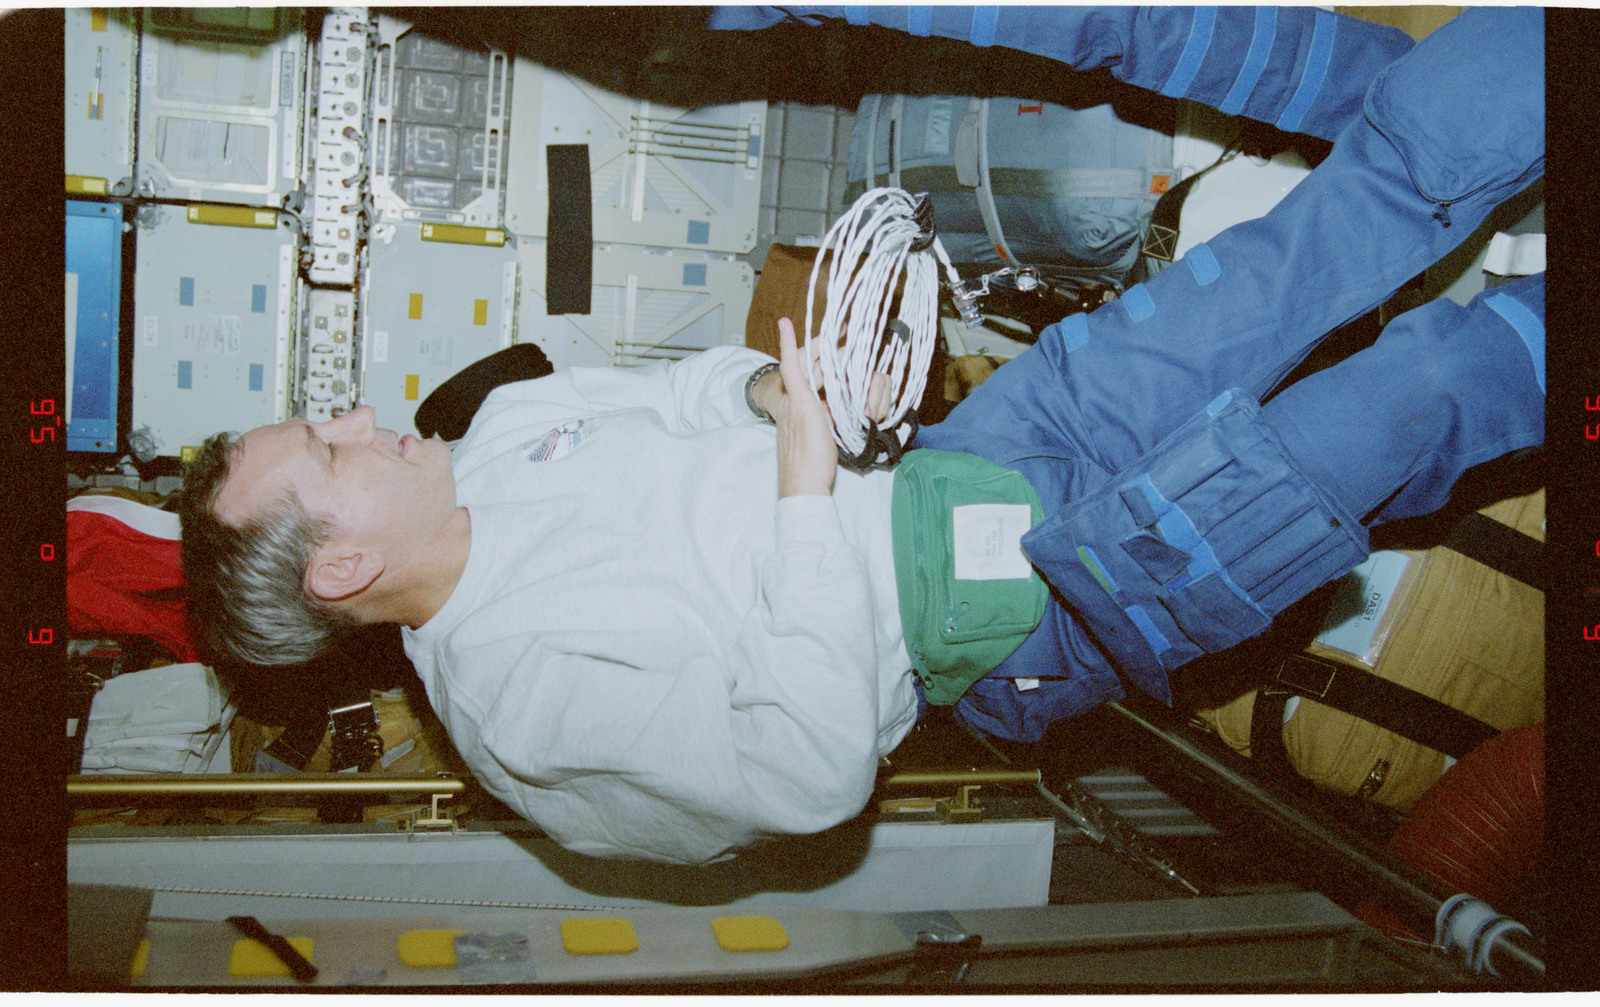 STS079-342-017 - STS-079 - STS-79 crew activities in the Spacehab module and the transfer tunnel